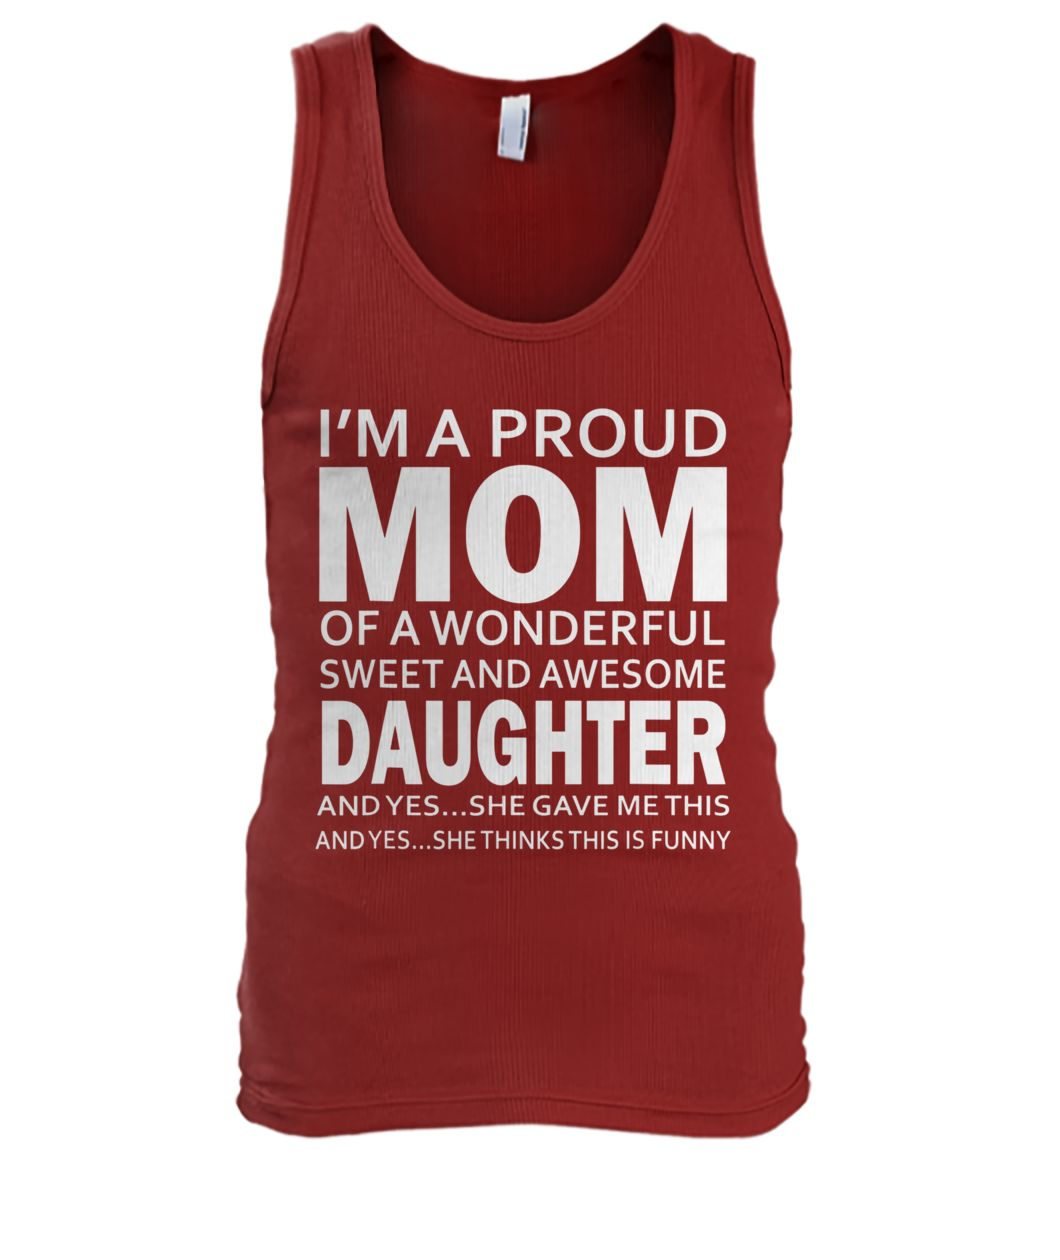 I'm a proud mom of a wonderful sweet and awesome daughter men's tank top